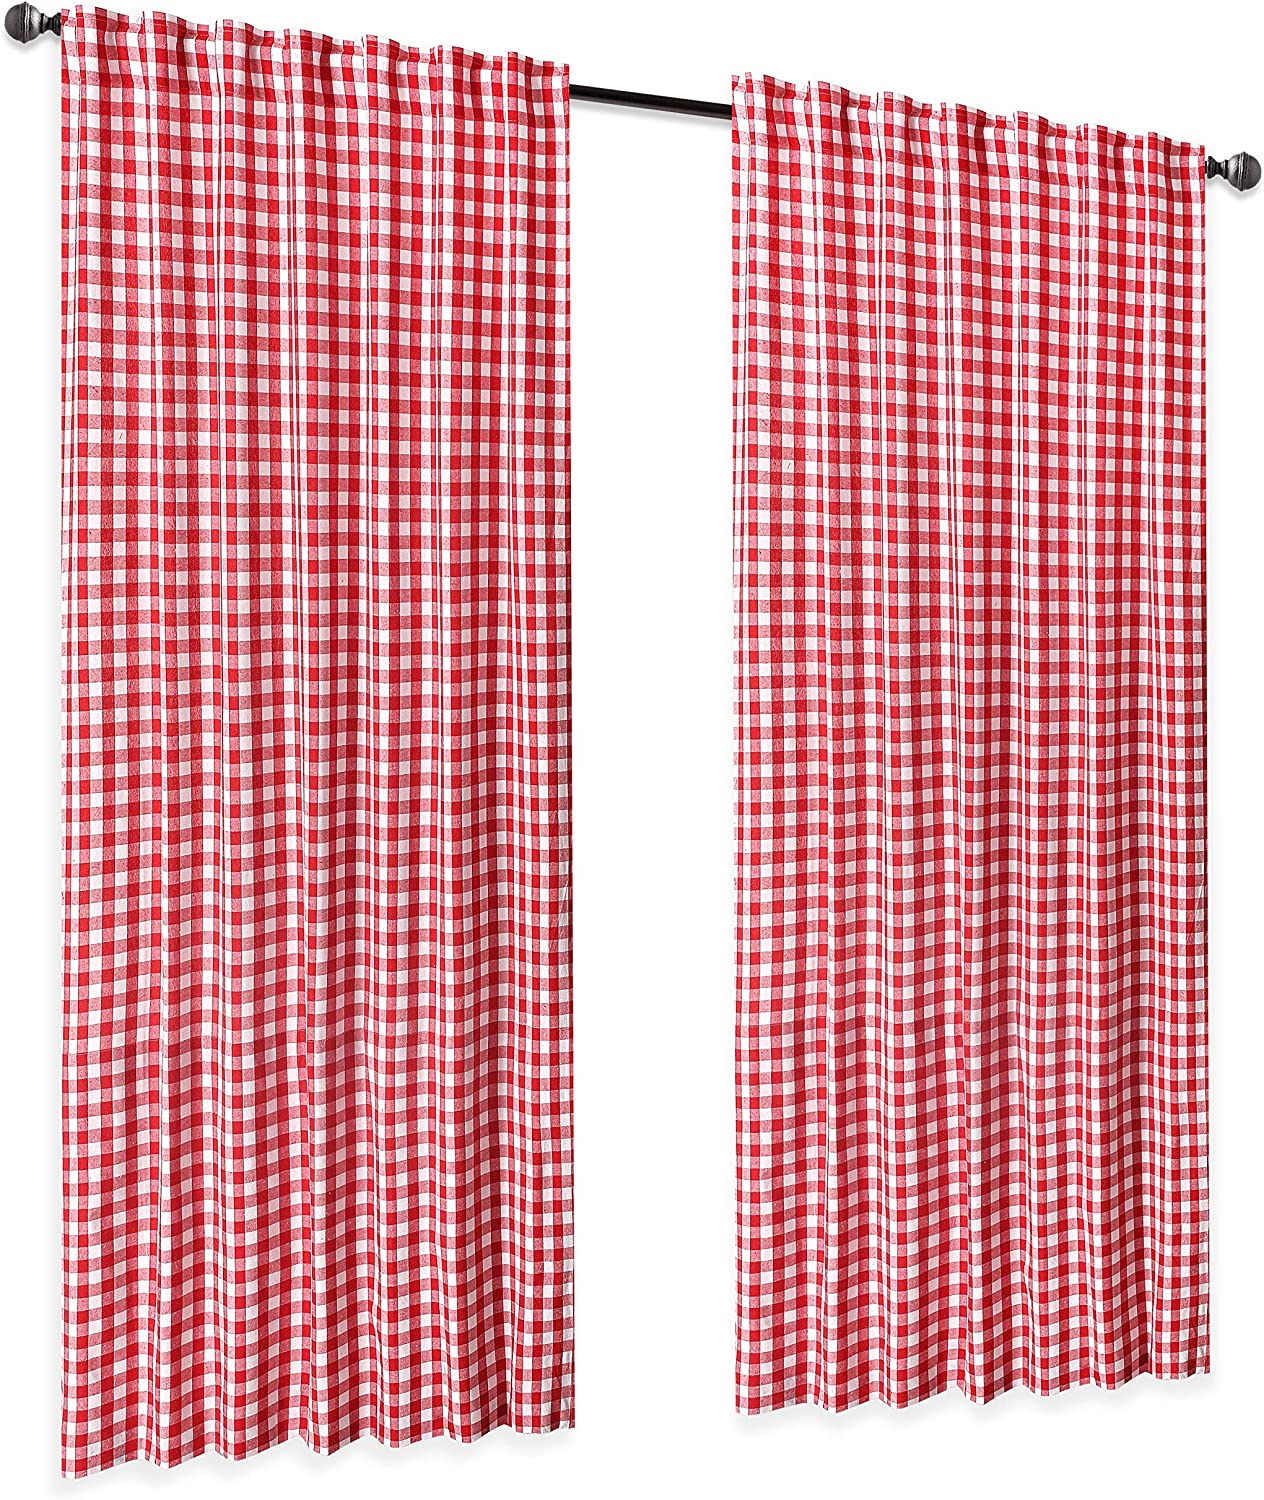 Ramanta Home Gingham Check Window Curtain Panel, 100% Cotton, Red/White, Cotton Curtains, 2 Panels Curtain, Tab Top Curtains, 50x96 Inches, Set of 2